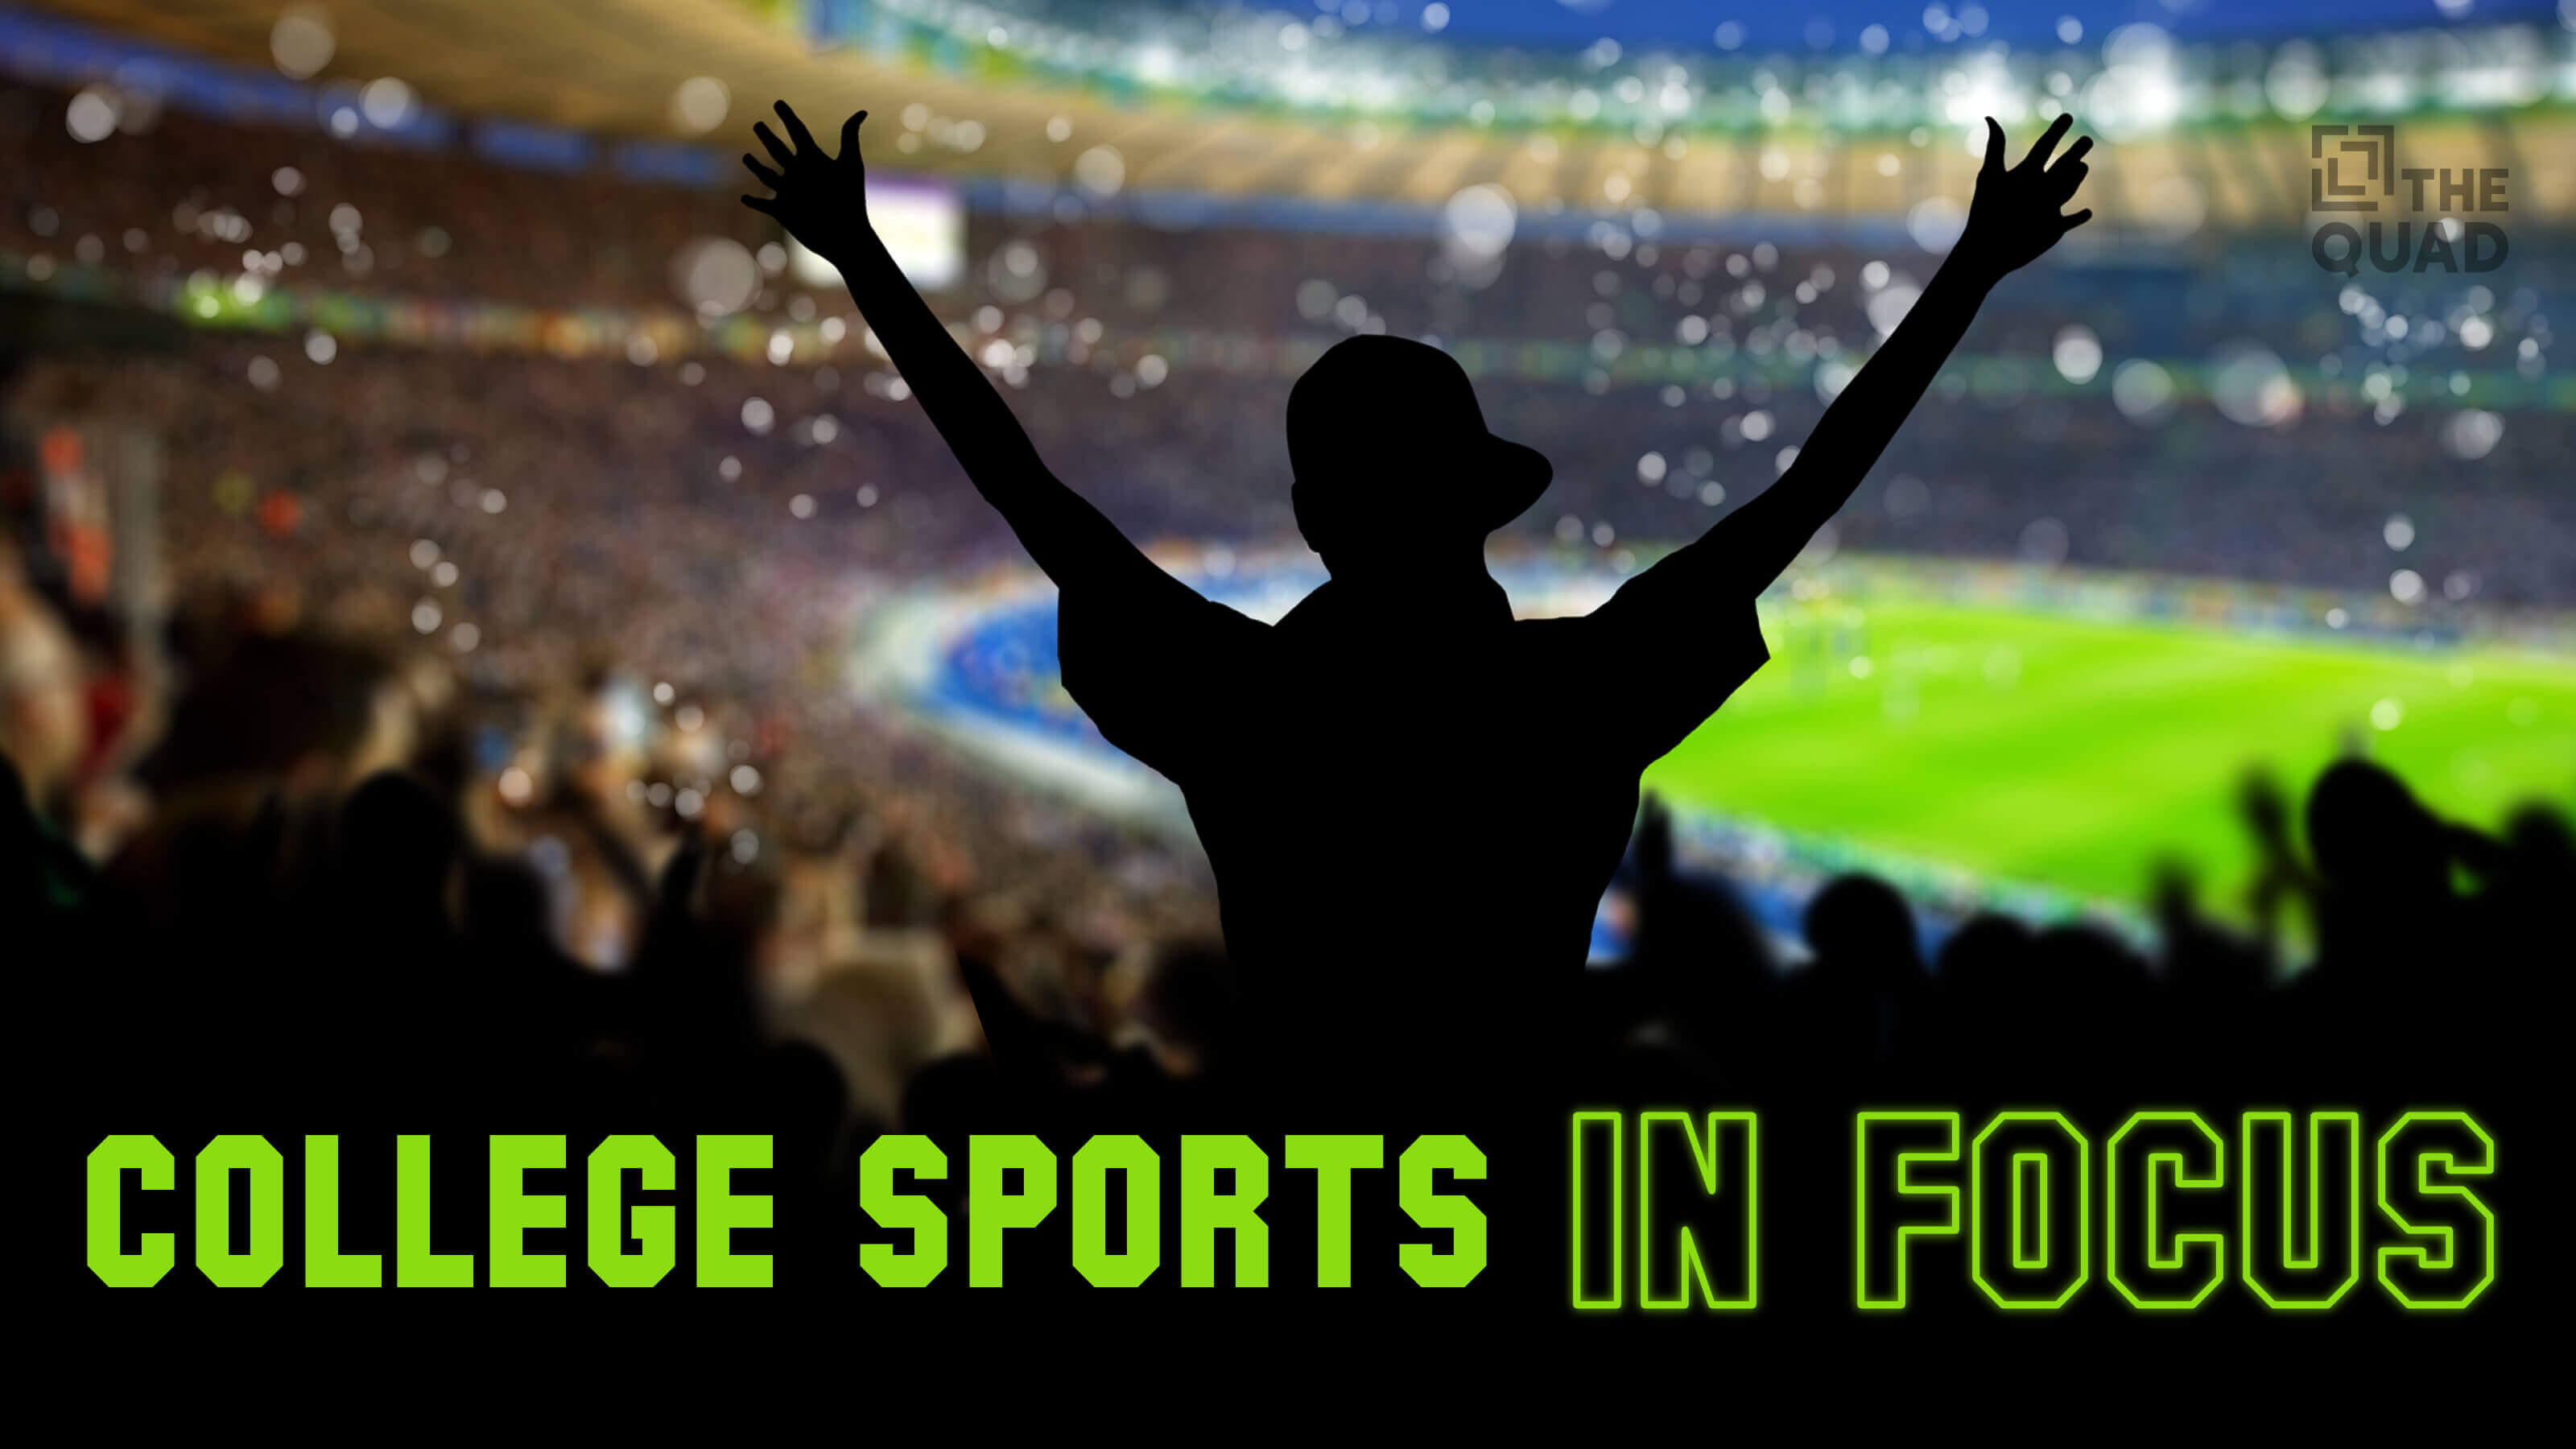 College Sports in Focus